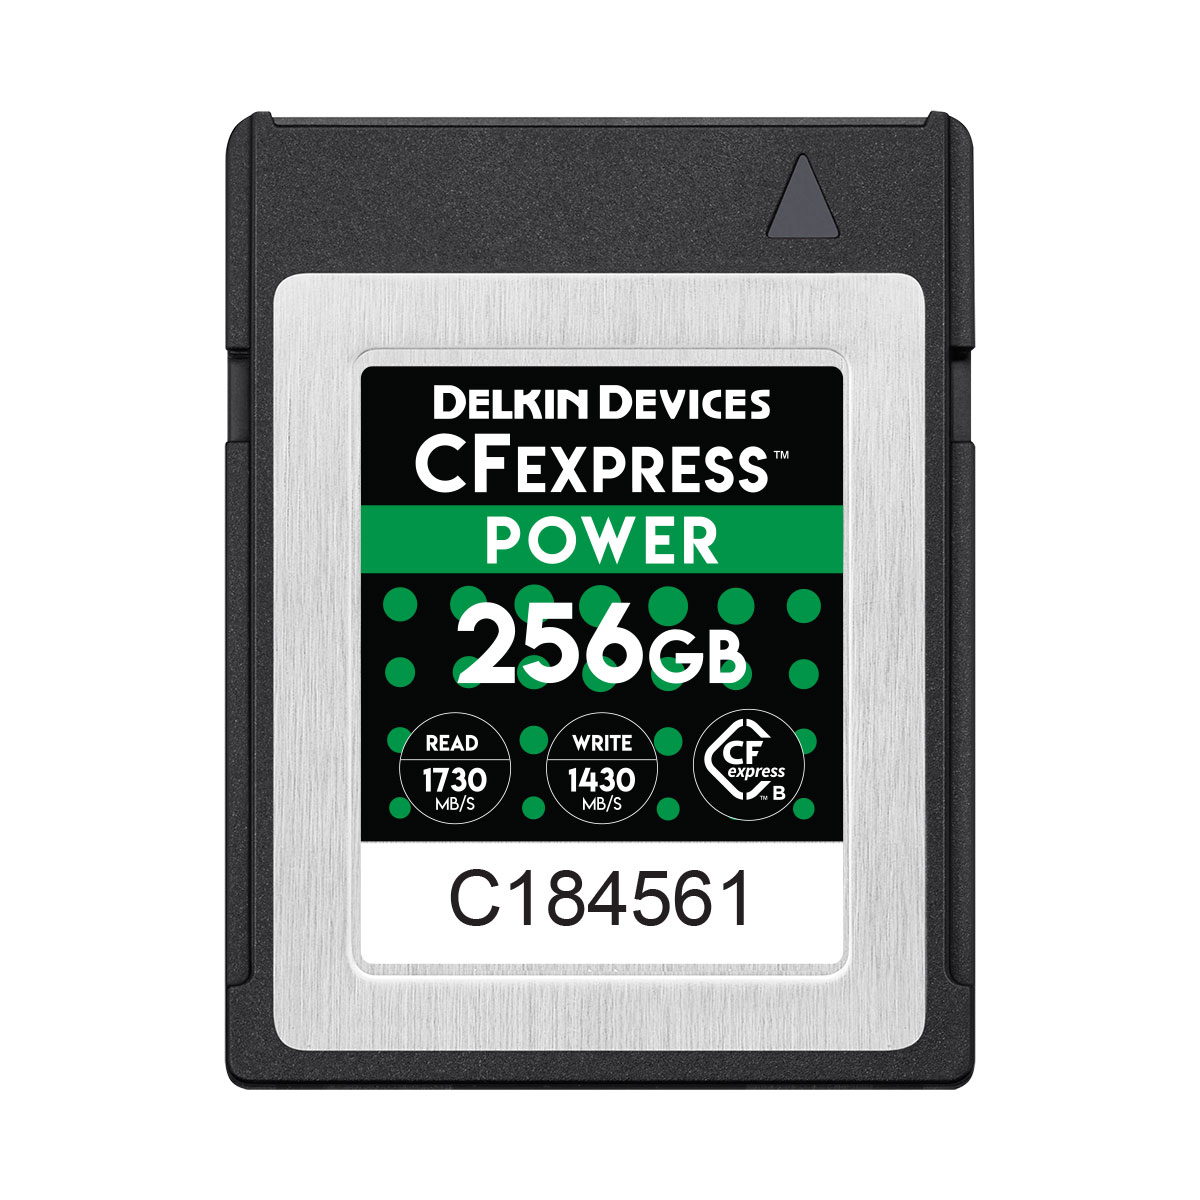 CFexpress POWER 256GB